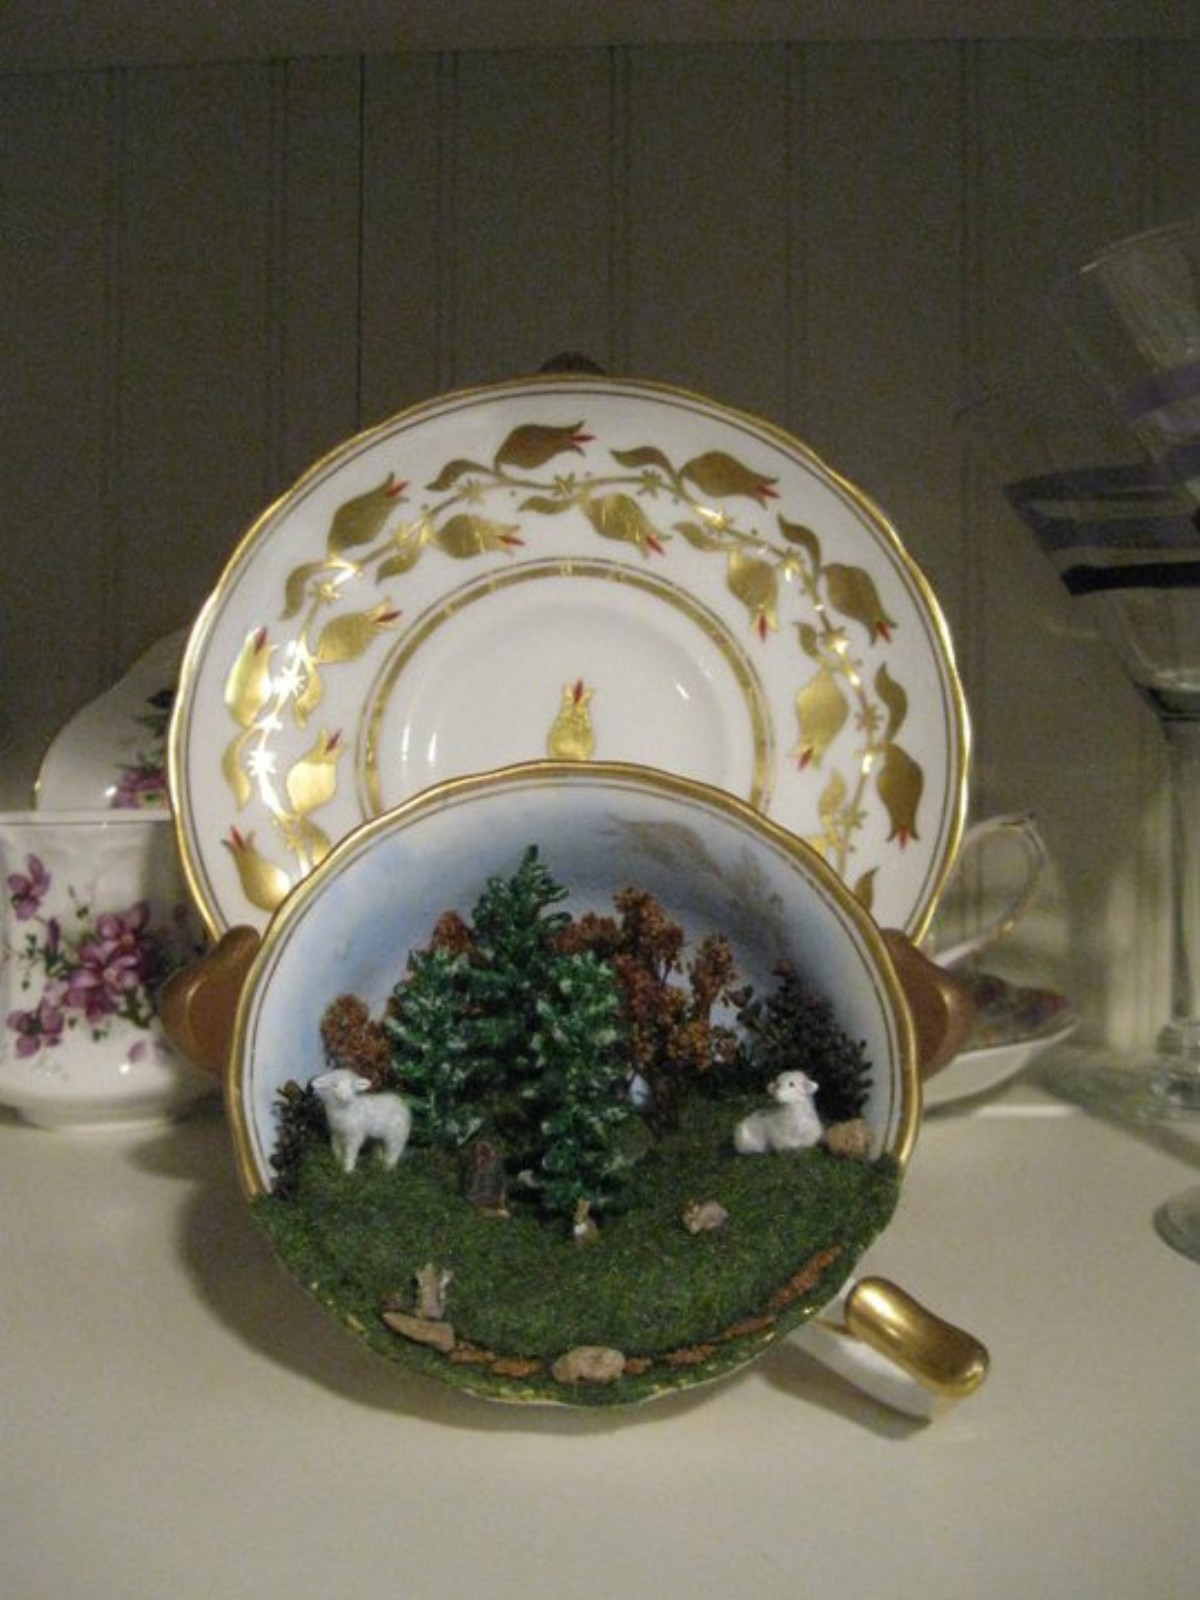 Forest Scene in a Tea Cup